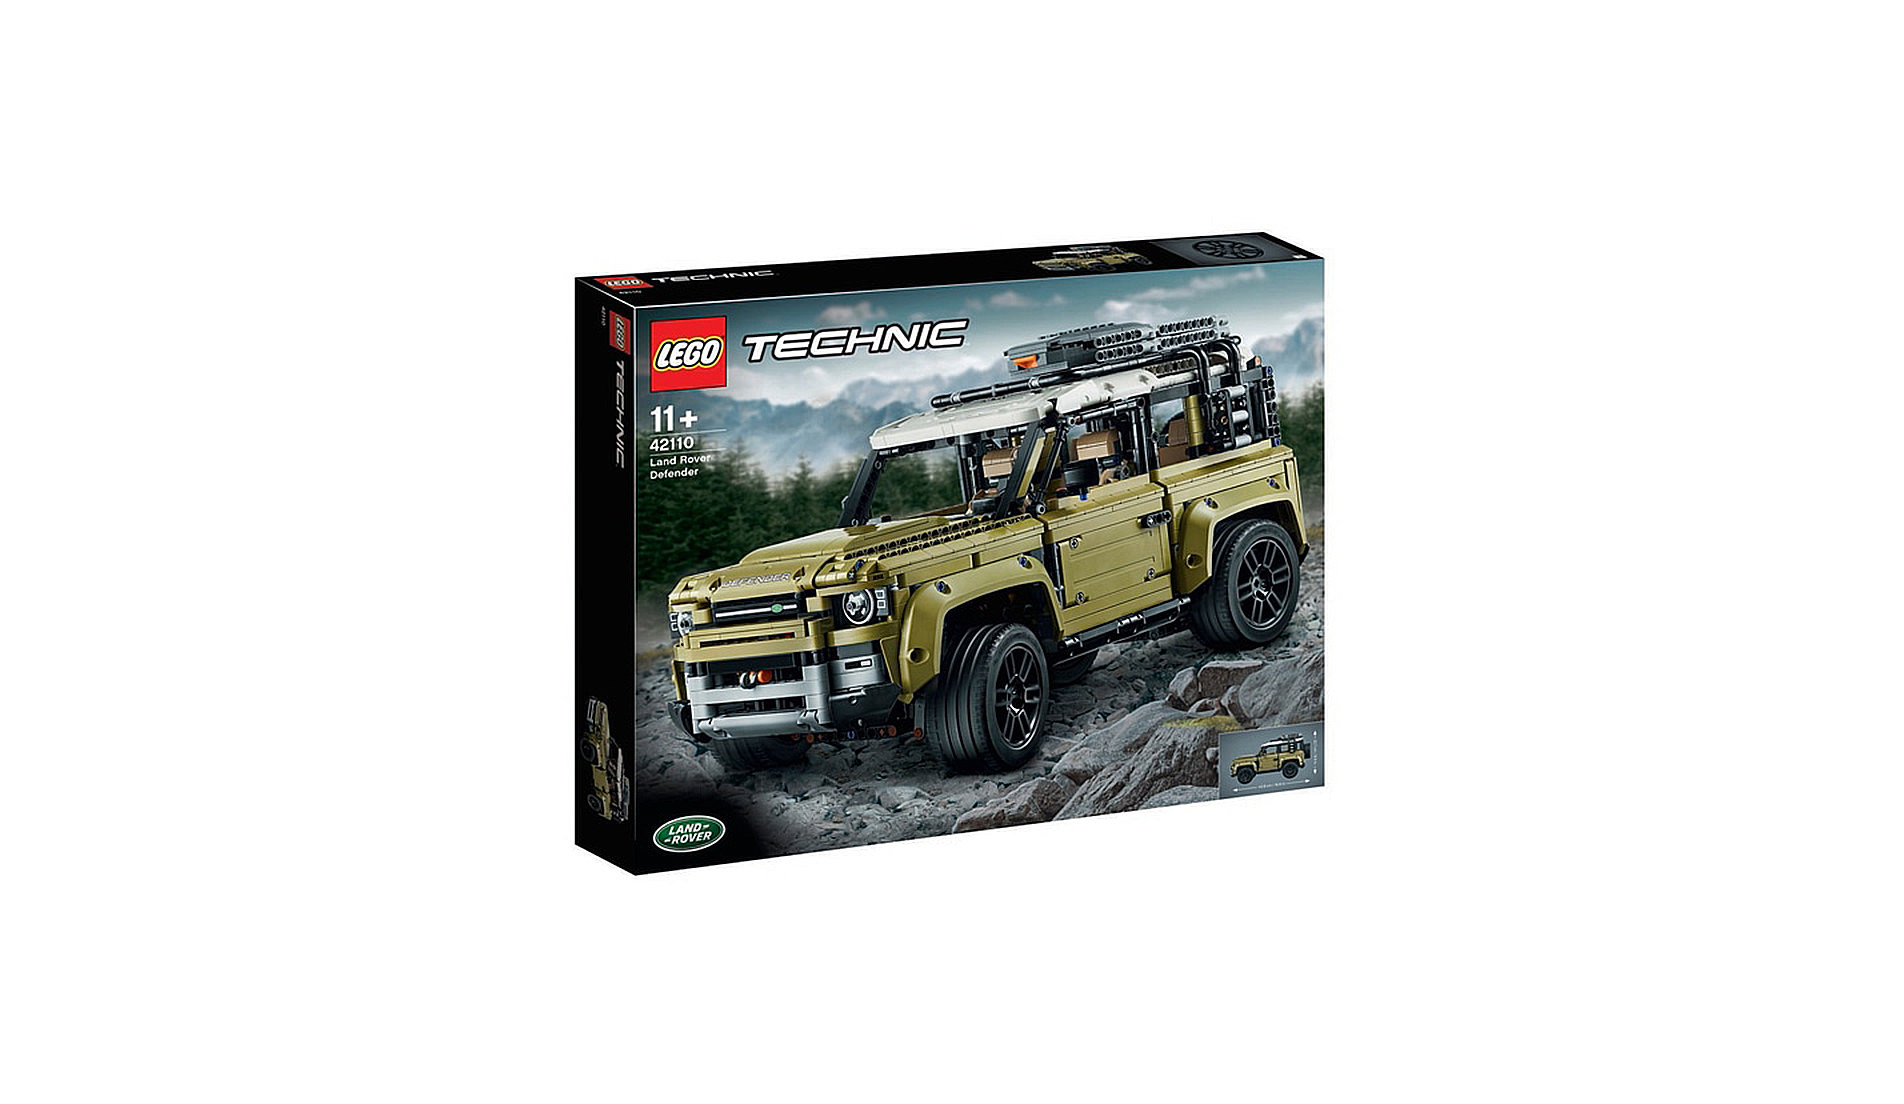 The New Lego Technic Land Rover Defender